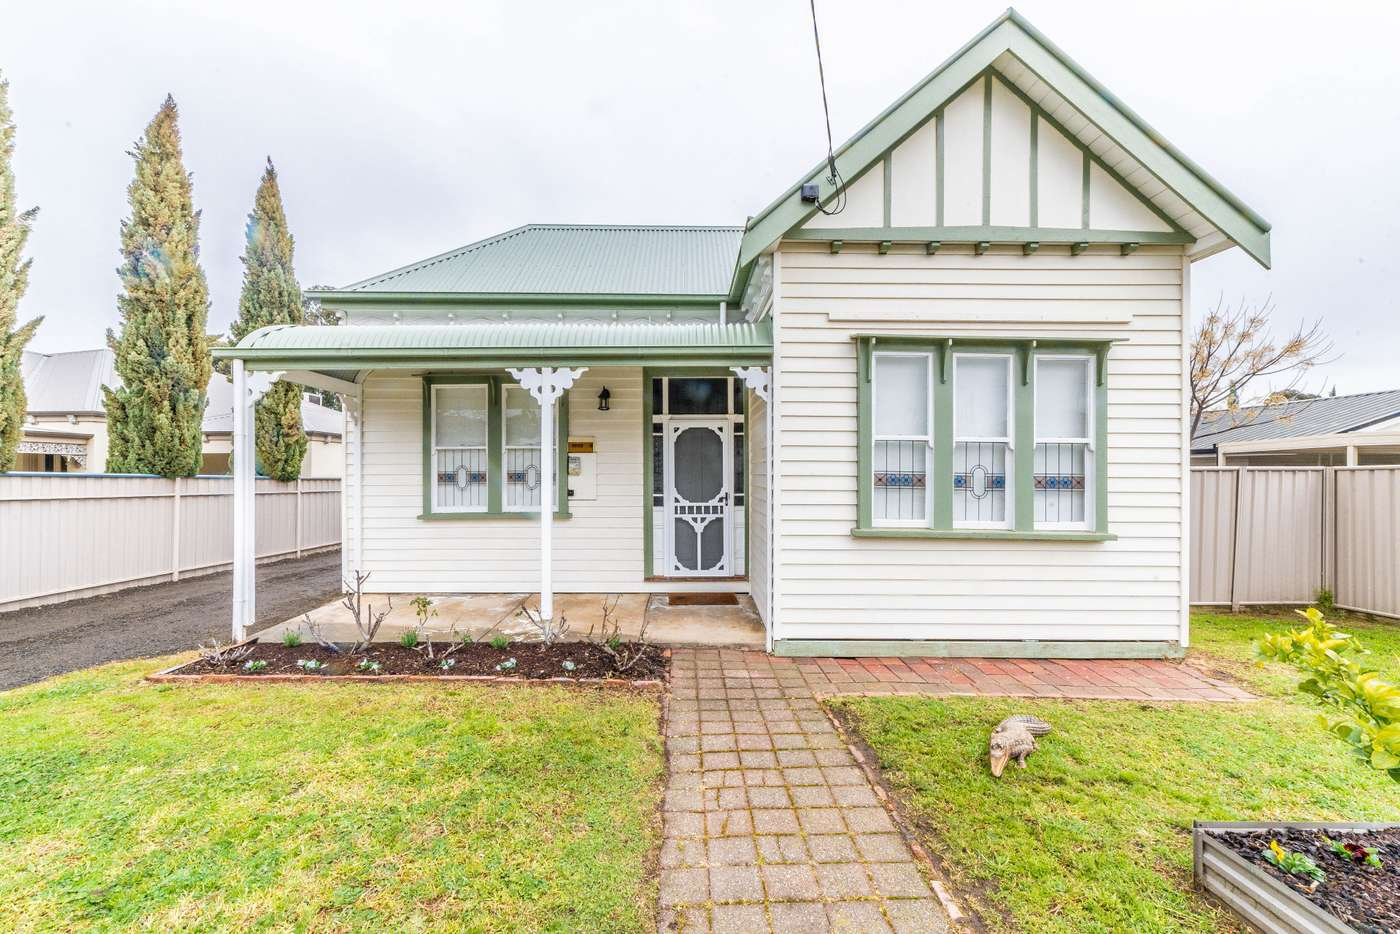 Main view of Homely house listing, 82 Sternberg, Kennington VIC 3550